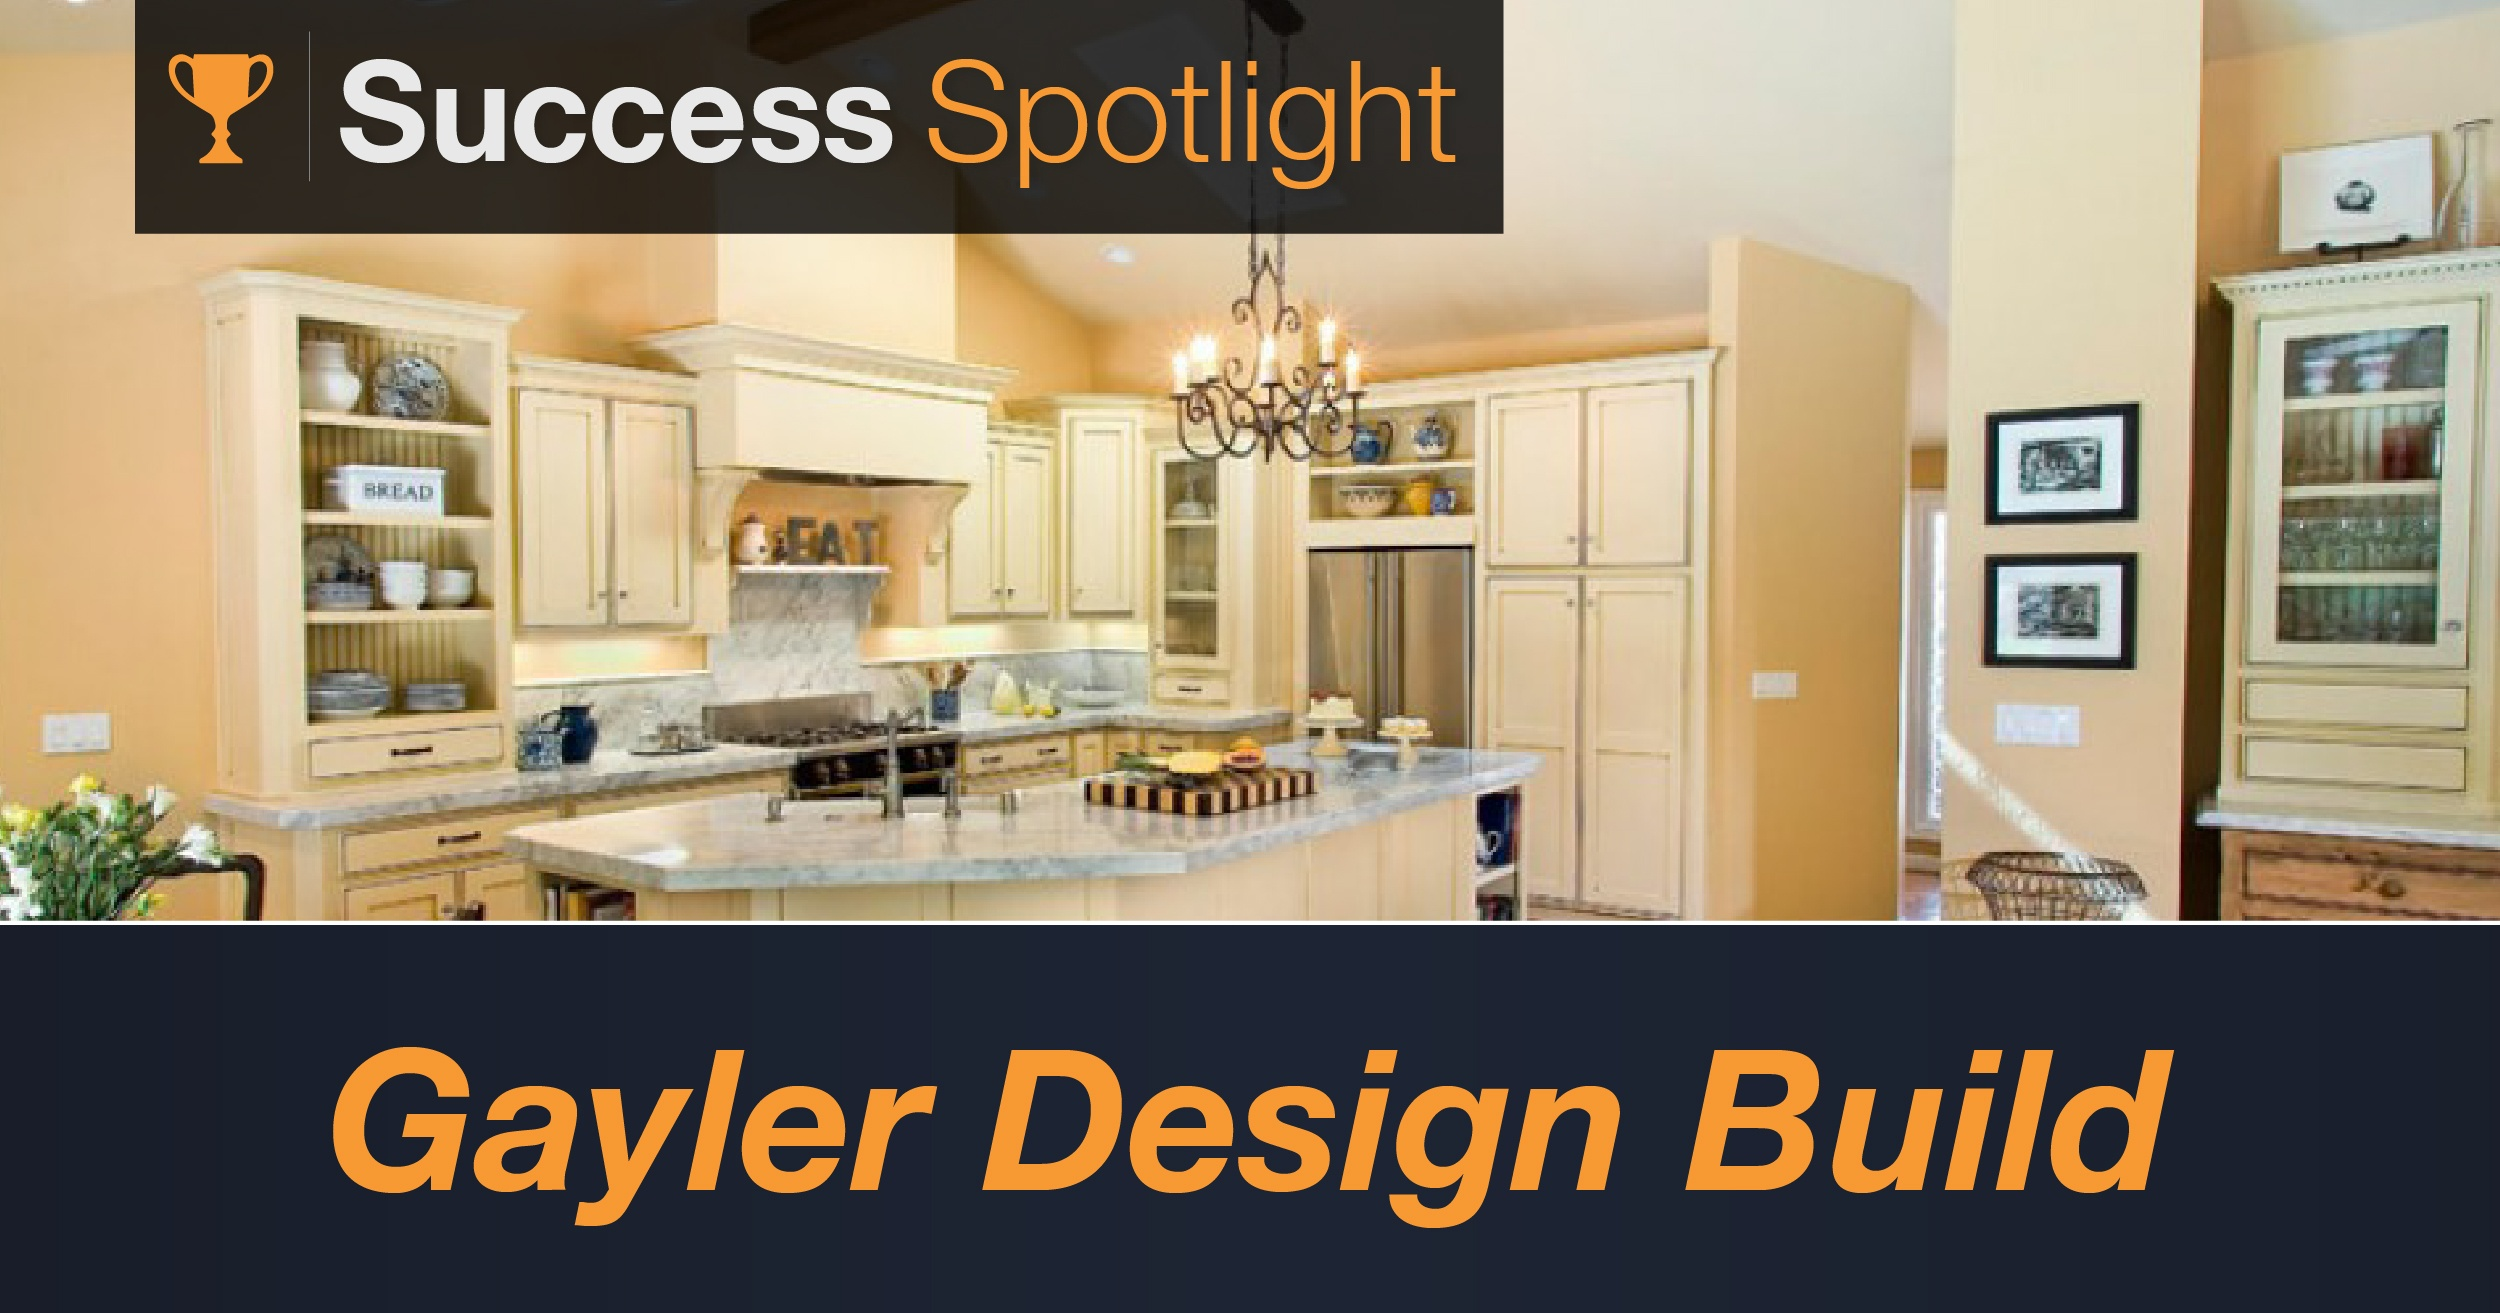 Success Spotlight: Gayler Design Build